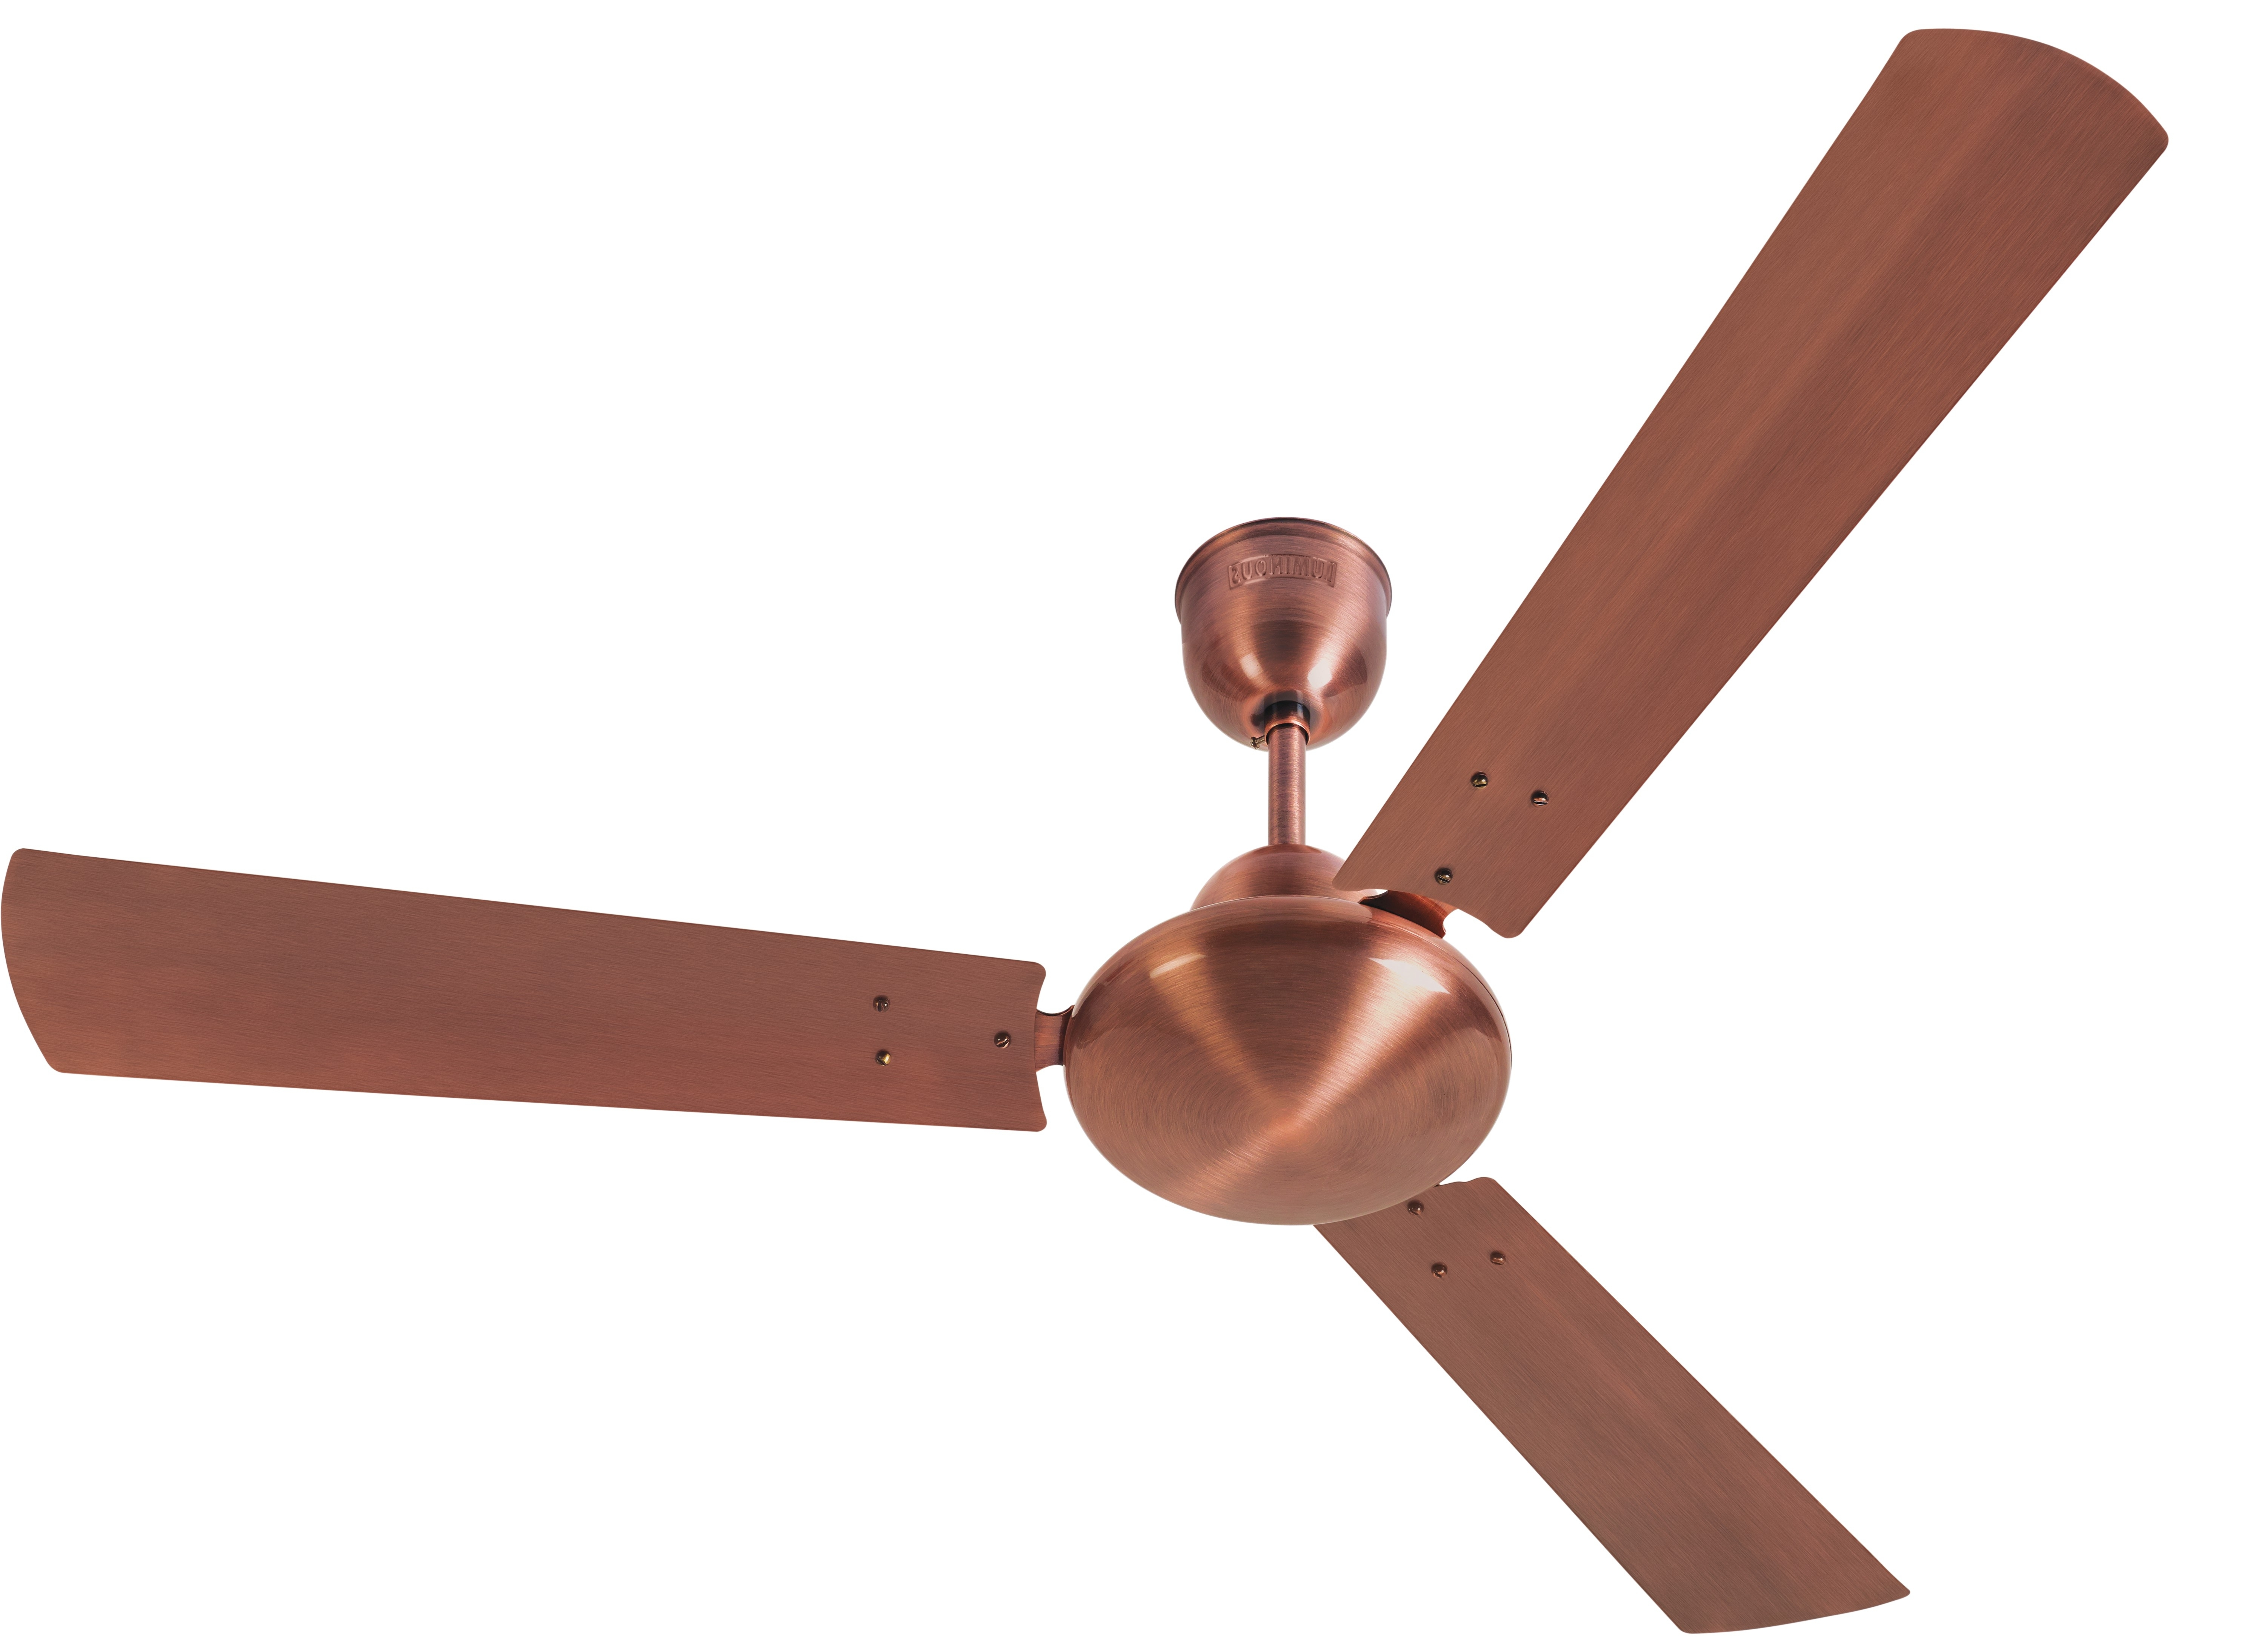 Copper Outdoor Ceiling Fans In Widely Used 39 Copper Ceiling Fan With Light, Copper Ceiling Fan With Light (View 5 of 20)